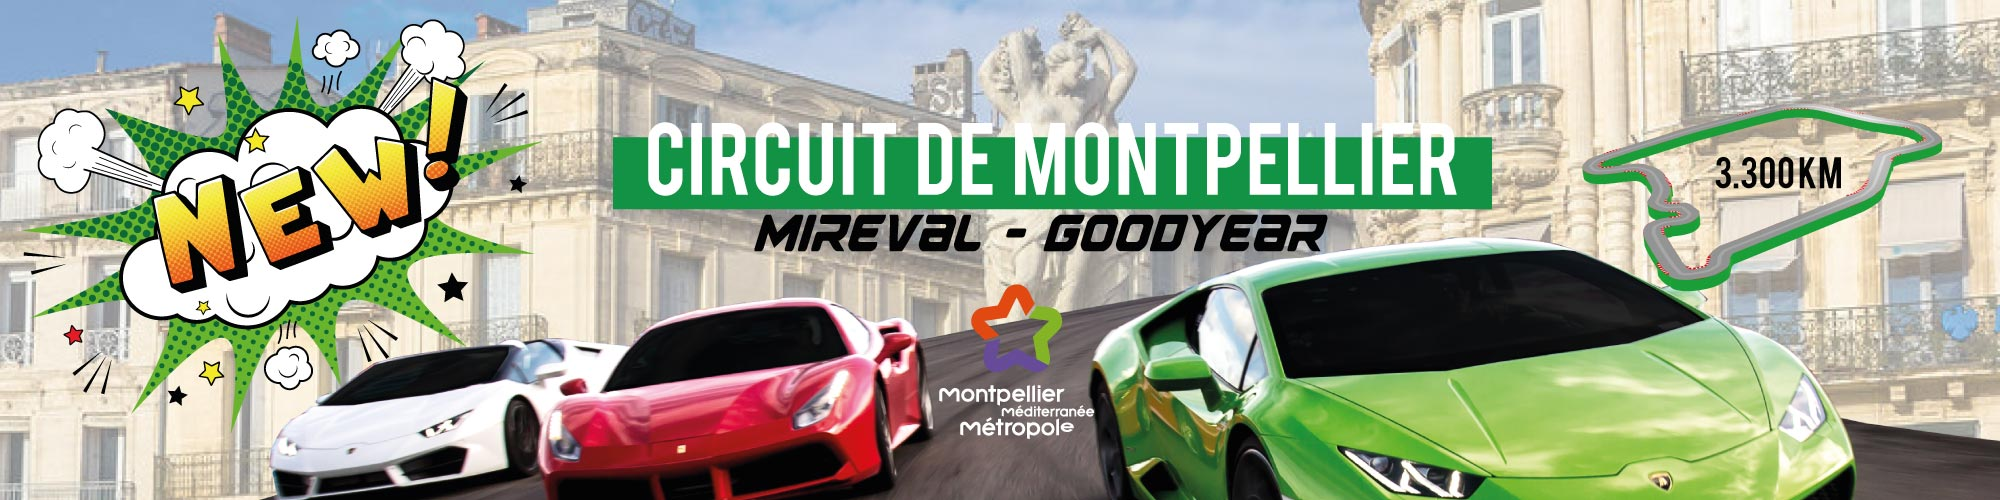 circuit de montpellier goodyear mireval